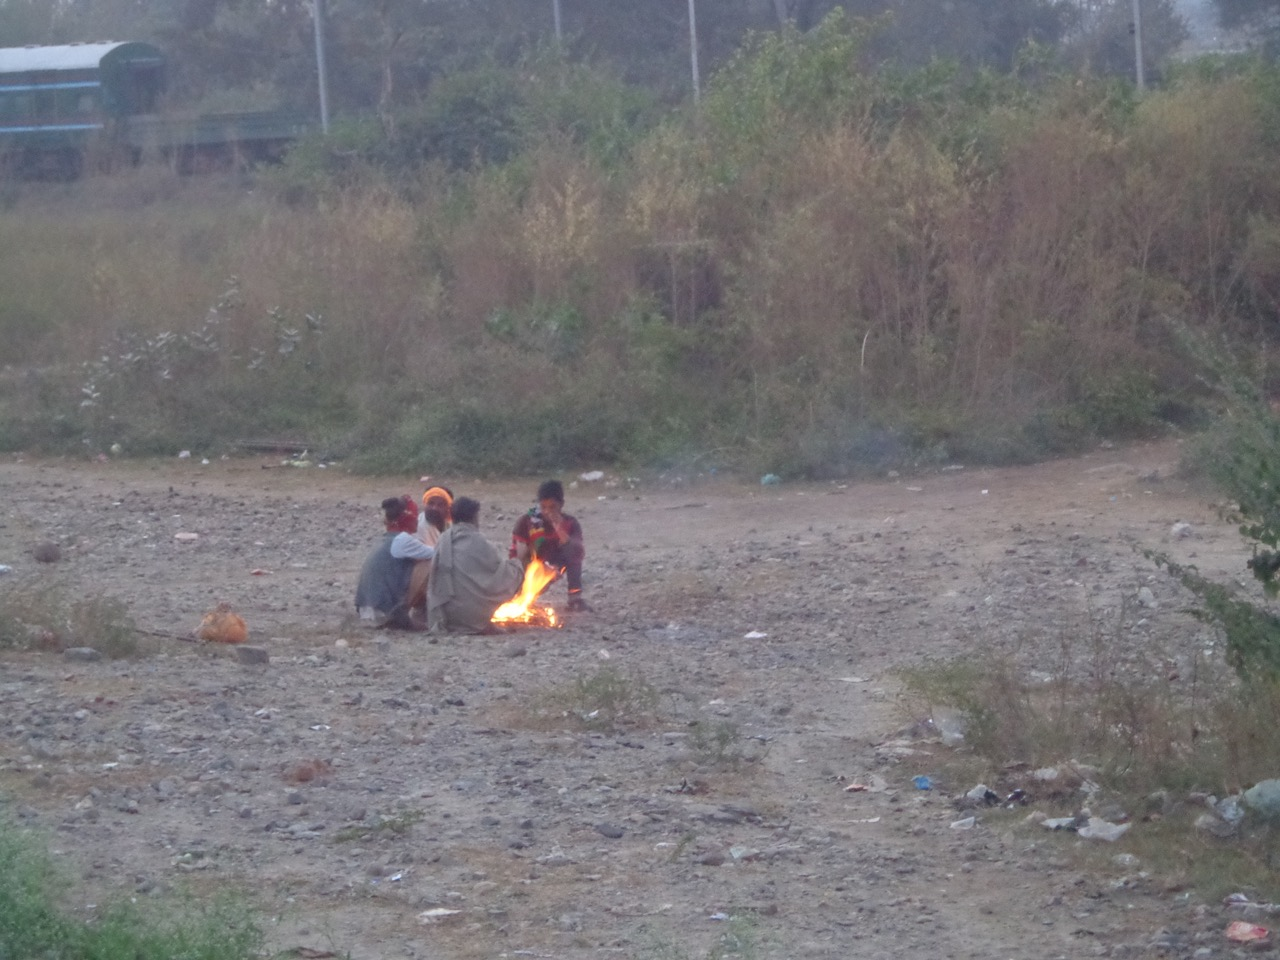 Guys warming themselves up near a bonfire just off the tracks at Pathankot Cantt. station.